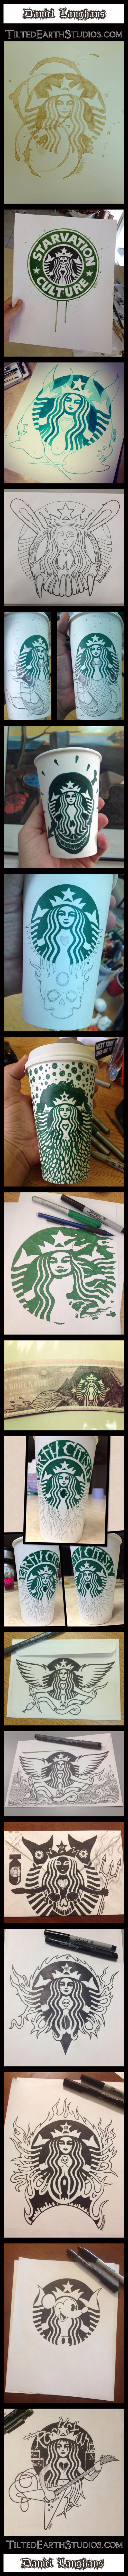 #WhiteCupContest #Starbucks Logo Obsession, Probably a slightly different angle than most of the logo mods I see...but I have fun. Love my Starbucks hot coffee with three pumps of peppermint. Simple=Love Daniel Langhans, Artist